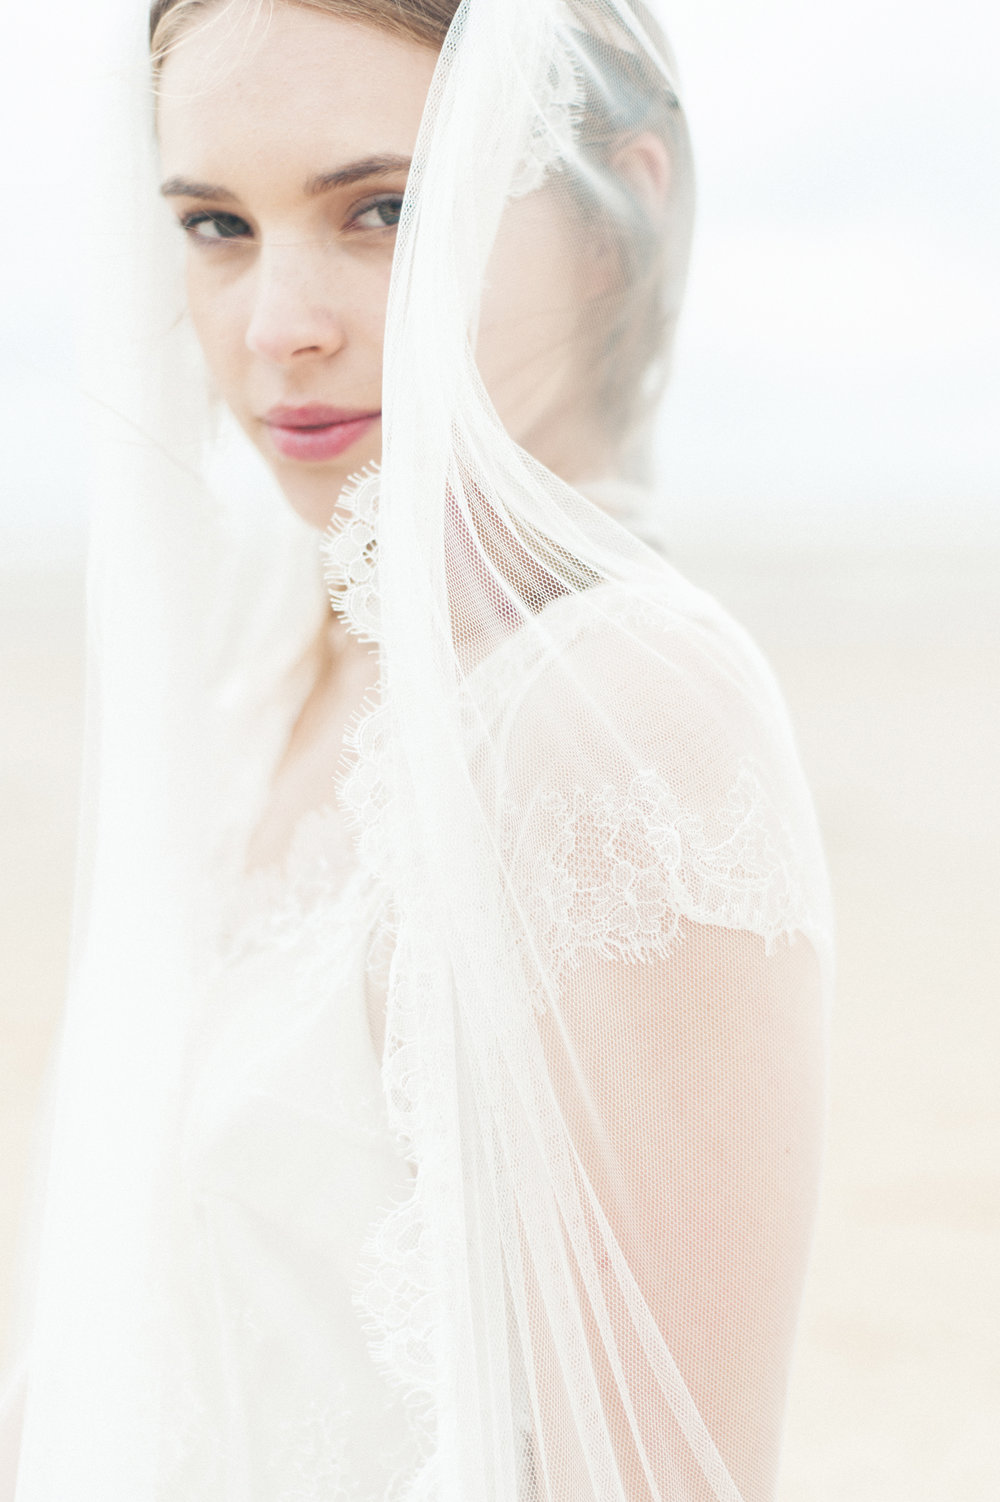 Kate-Beaumont-Wedding-Dresses-Formby-Beach-Emma-Pilkington-42.jpg